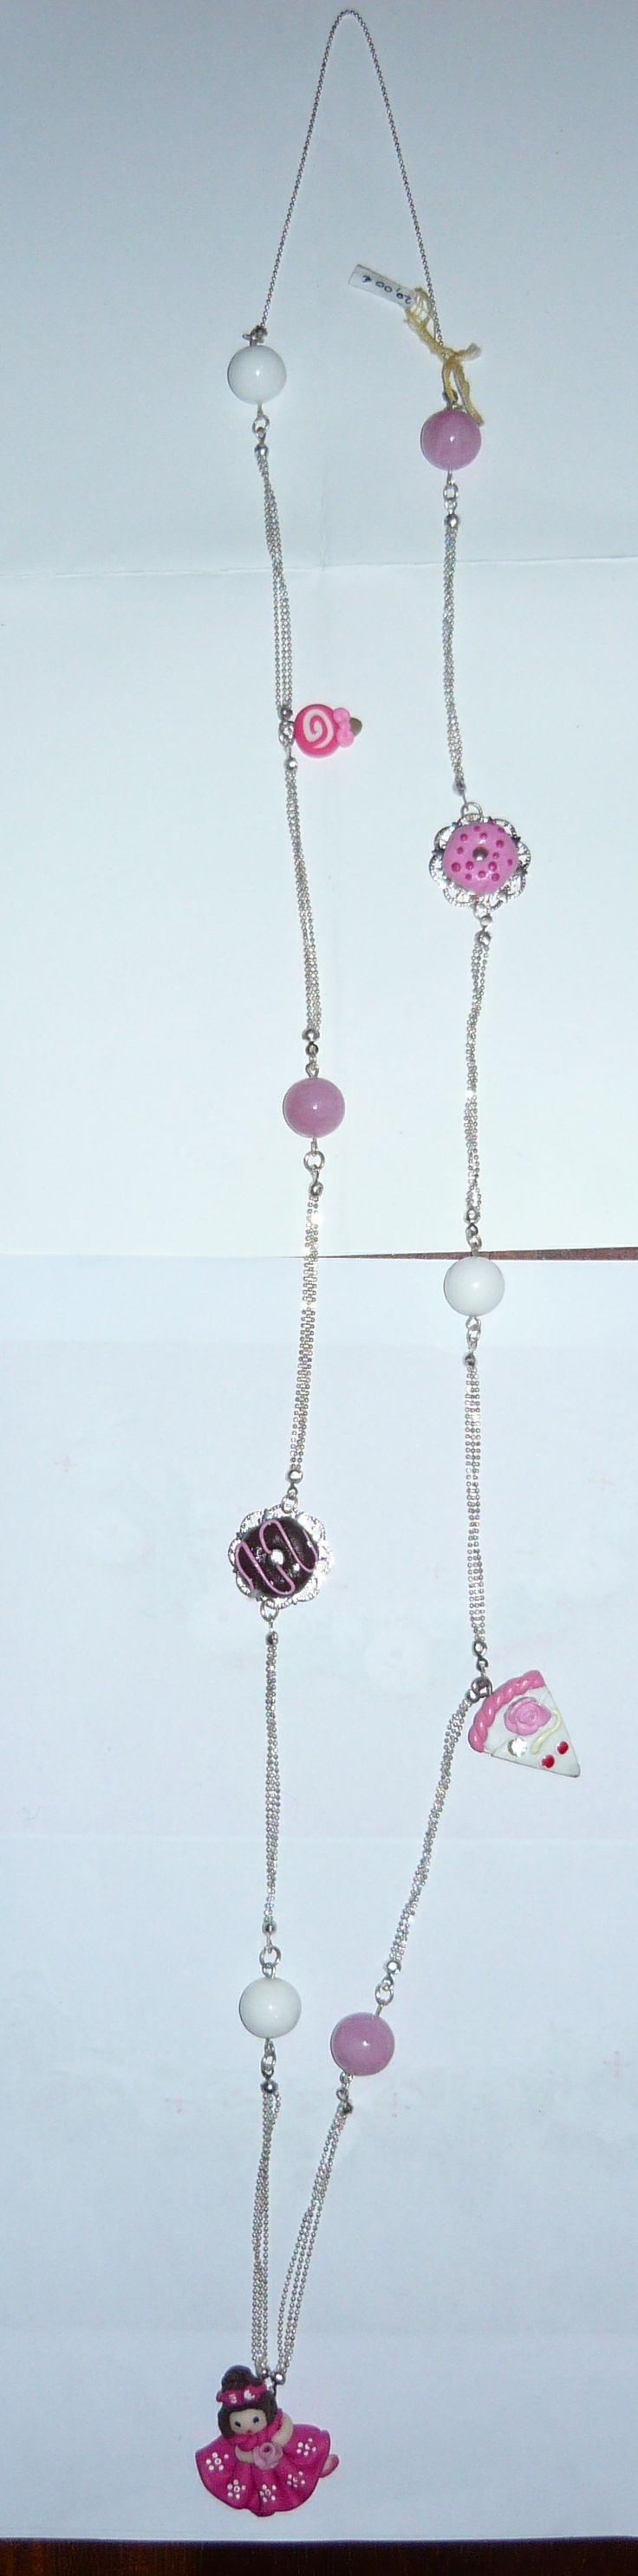 #Necklace with #doll and #pastries #pendants and pink #beads